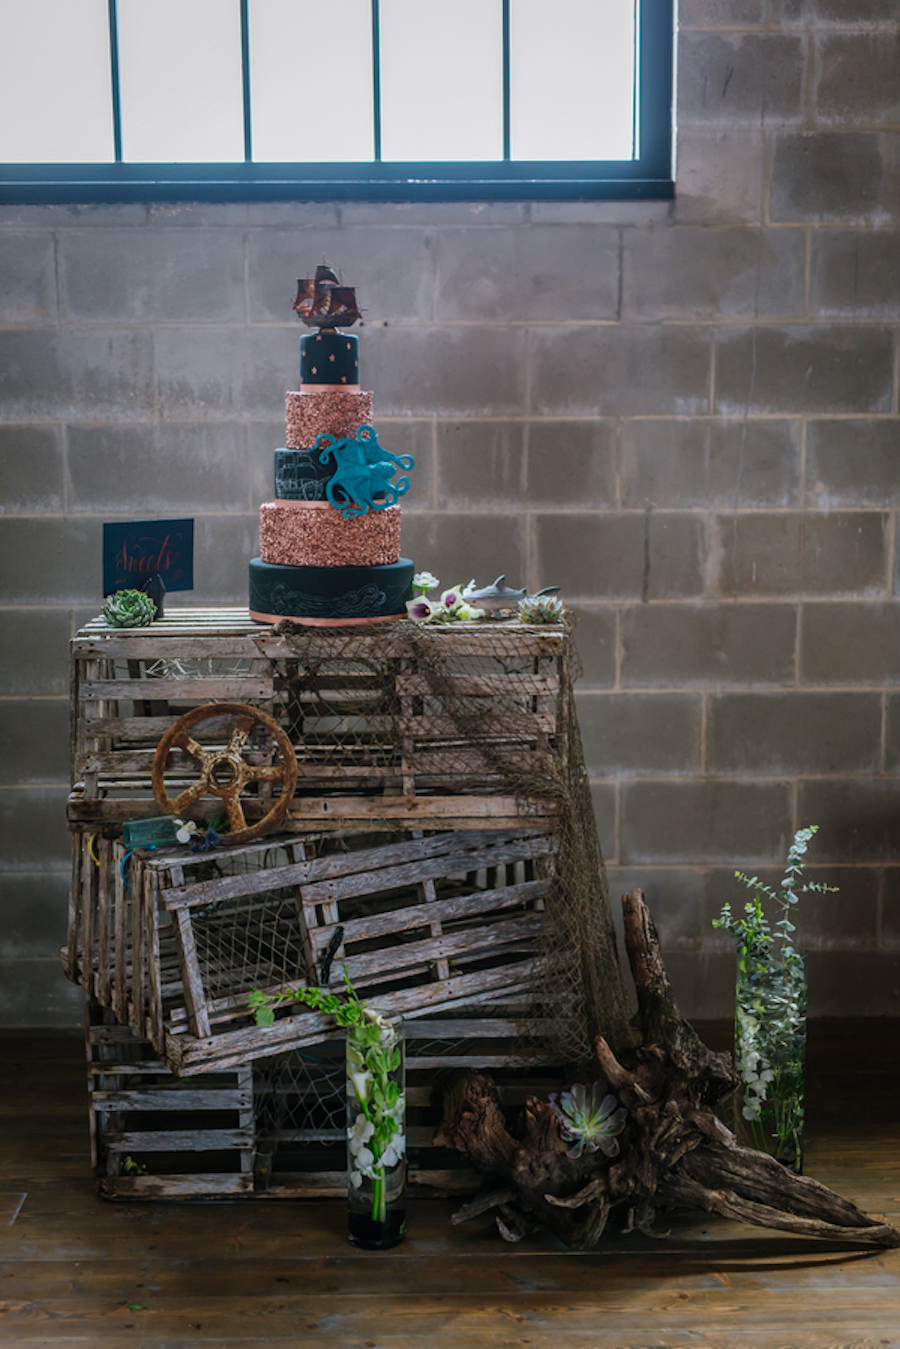 Ybor City Wedding Cake Display Table with Black and Gold Nautical Inspired Wedding Cake With Pirate ship and Octopus on Wooden Fishing Crates | Coppertail Brewing Co